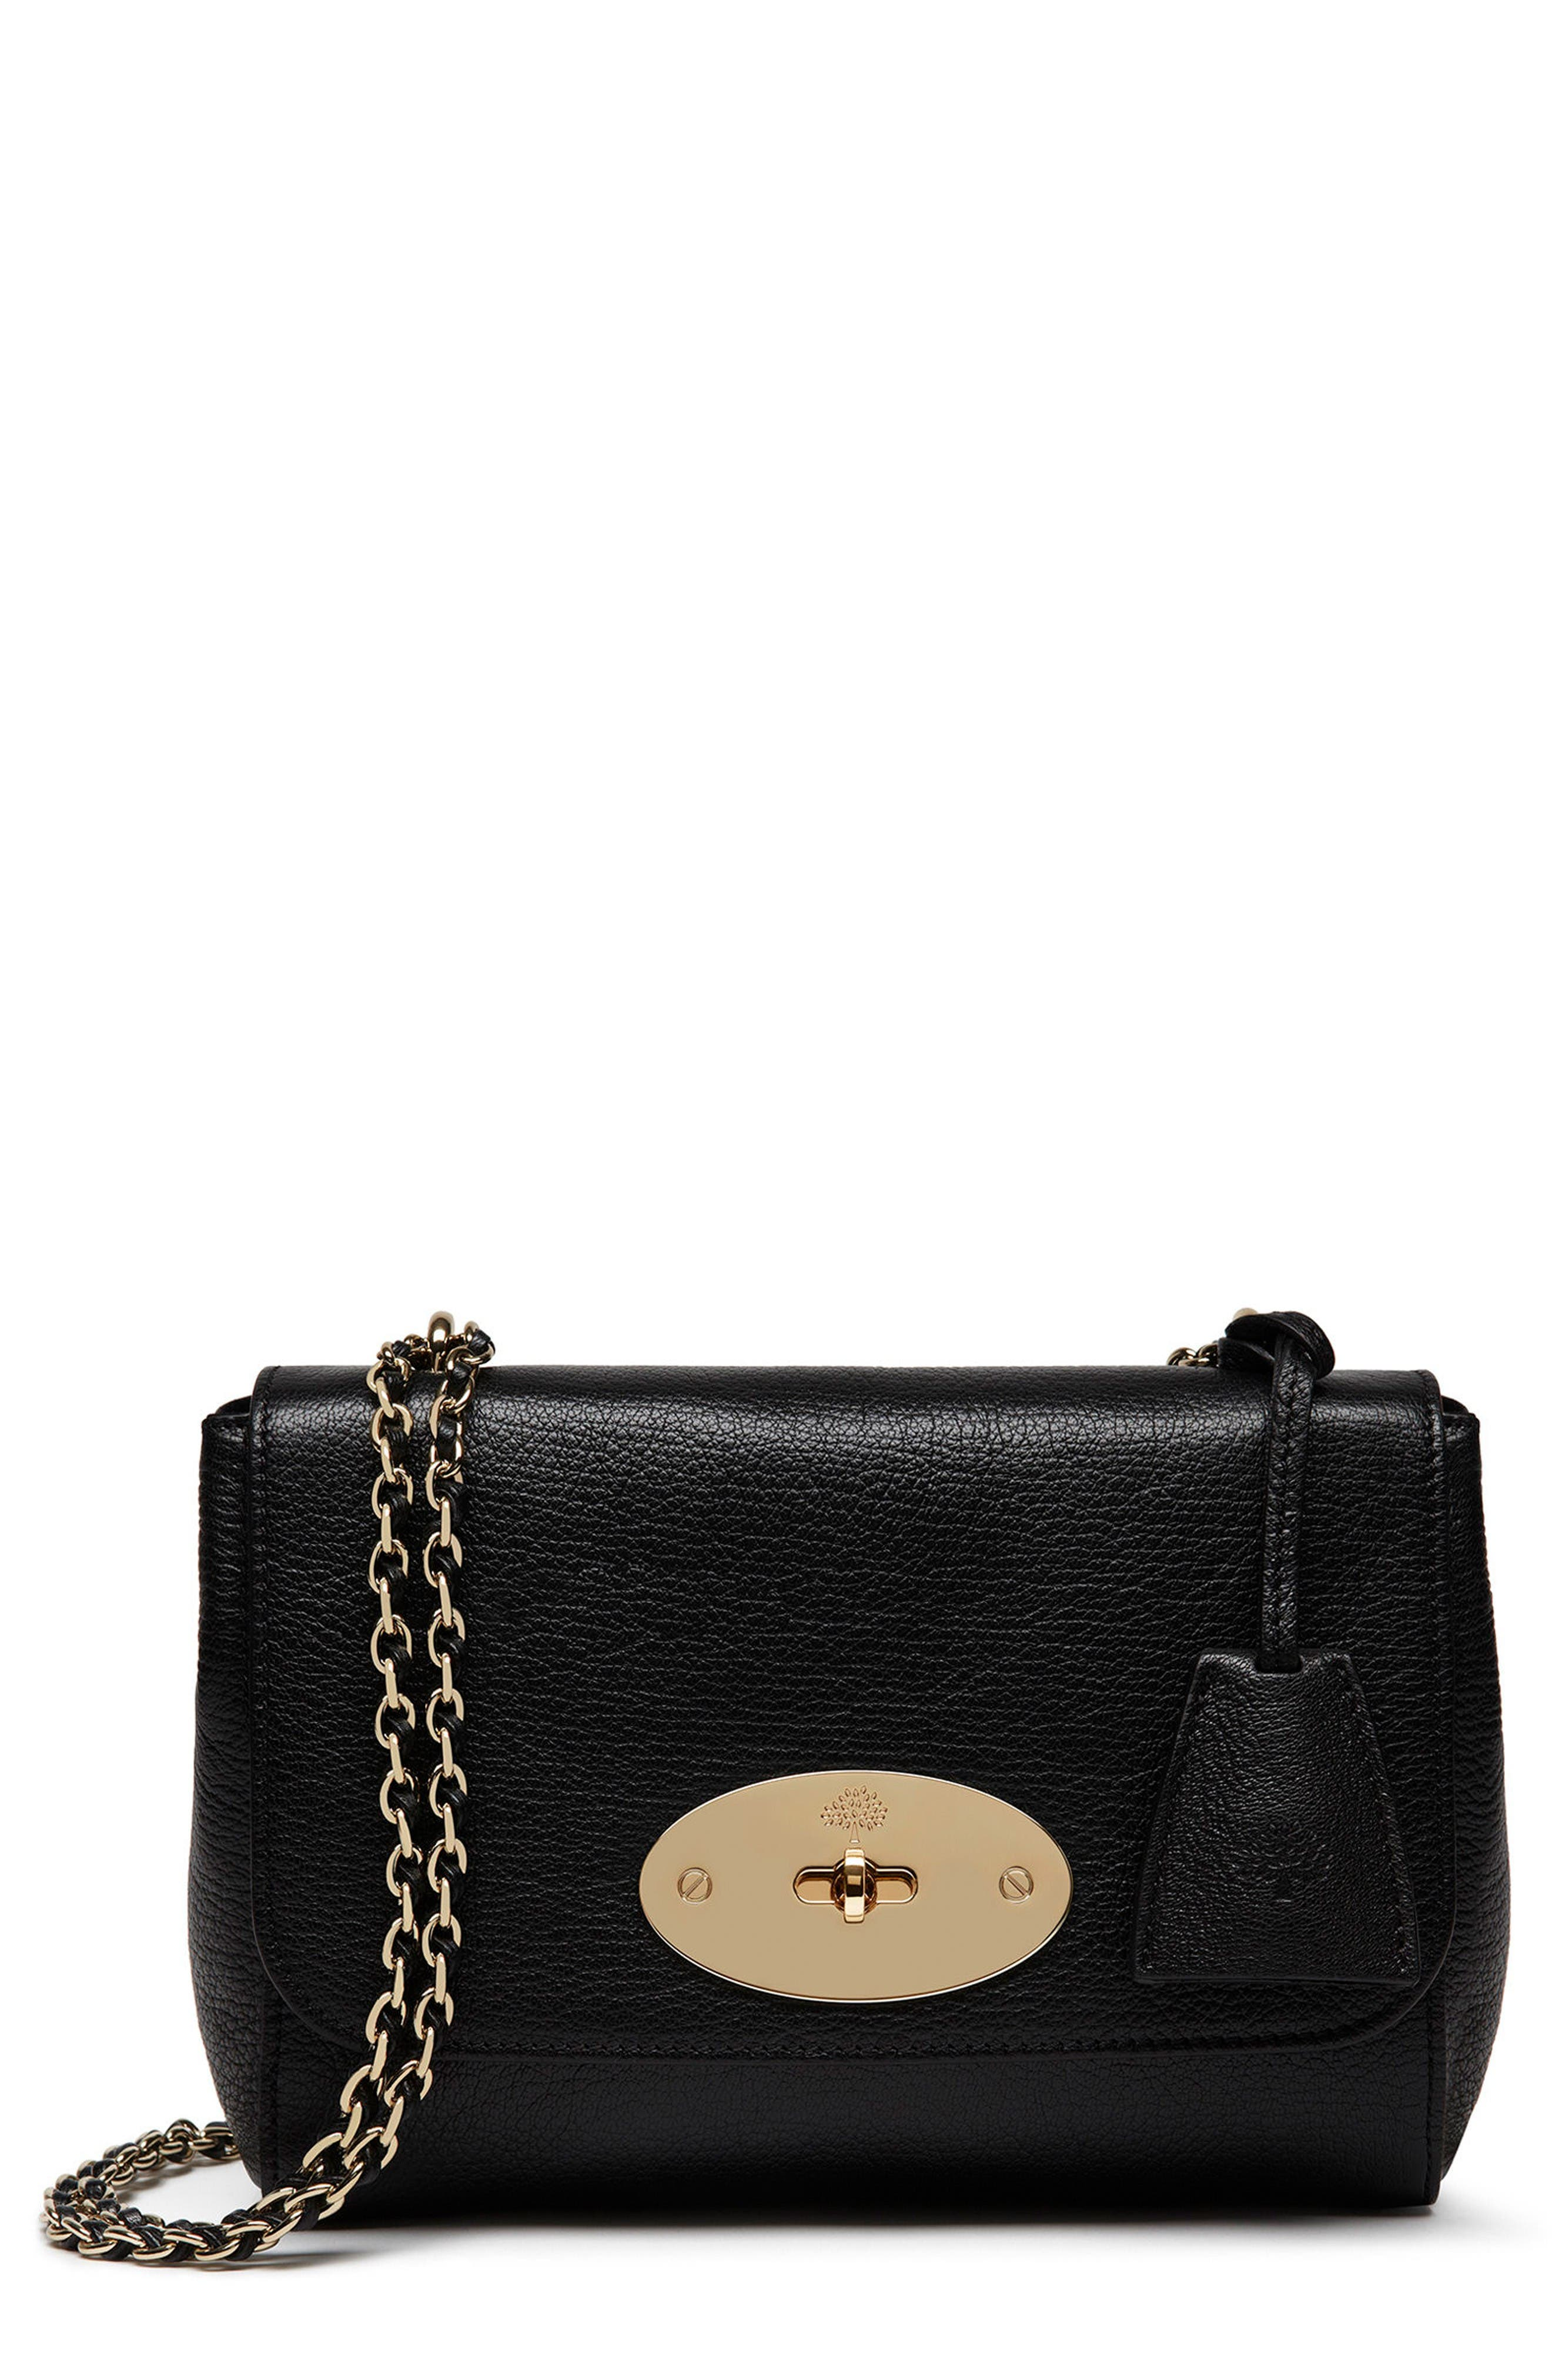 Main Image - Mulberry Lily Glossy Leather Crossbody Clutch